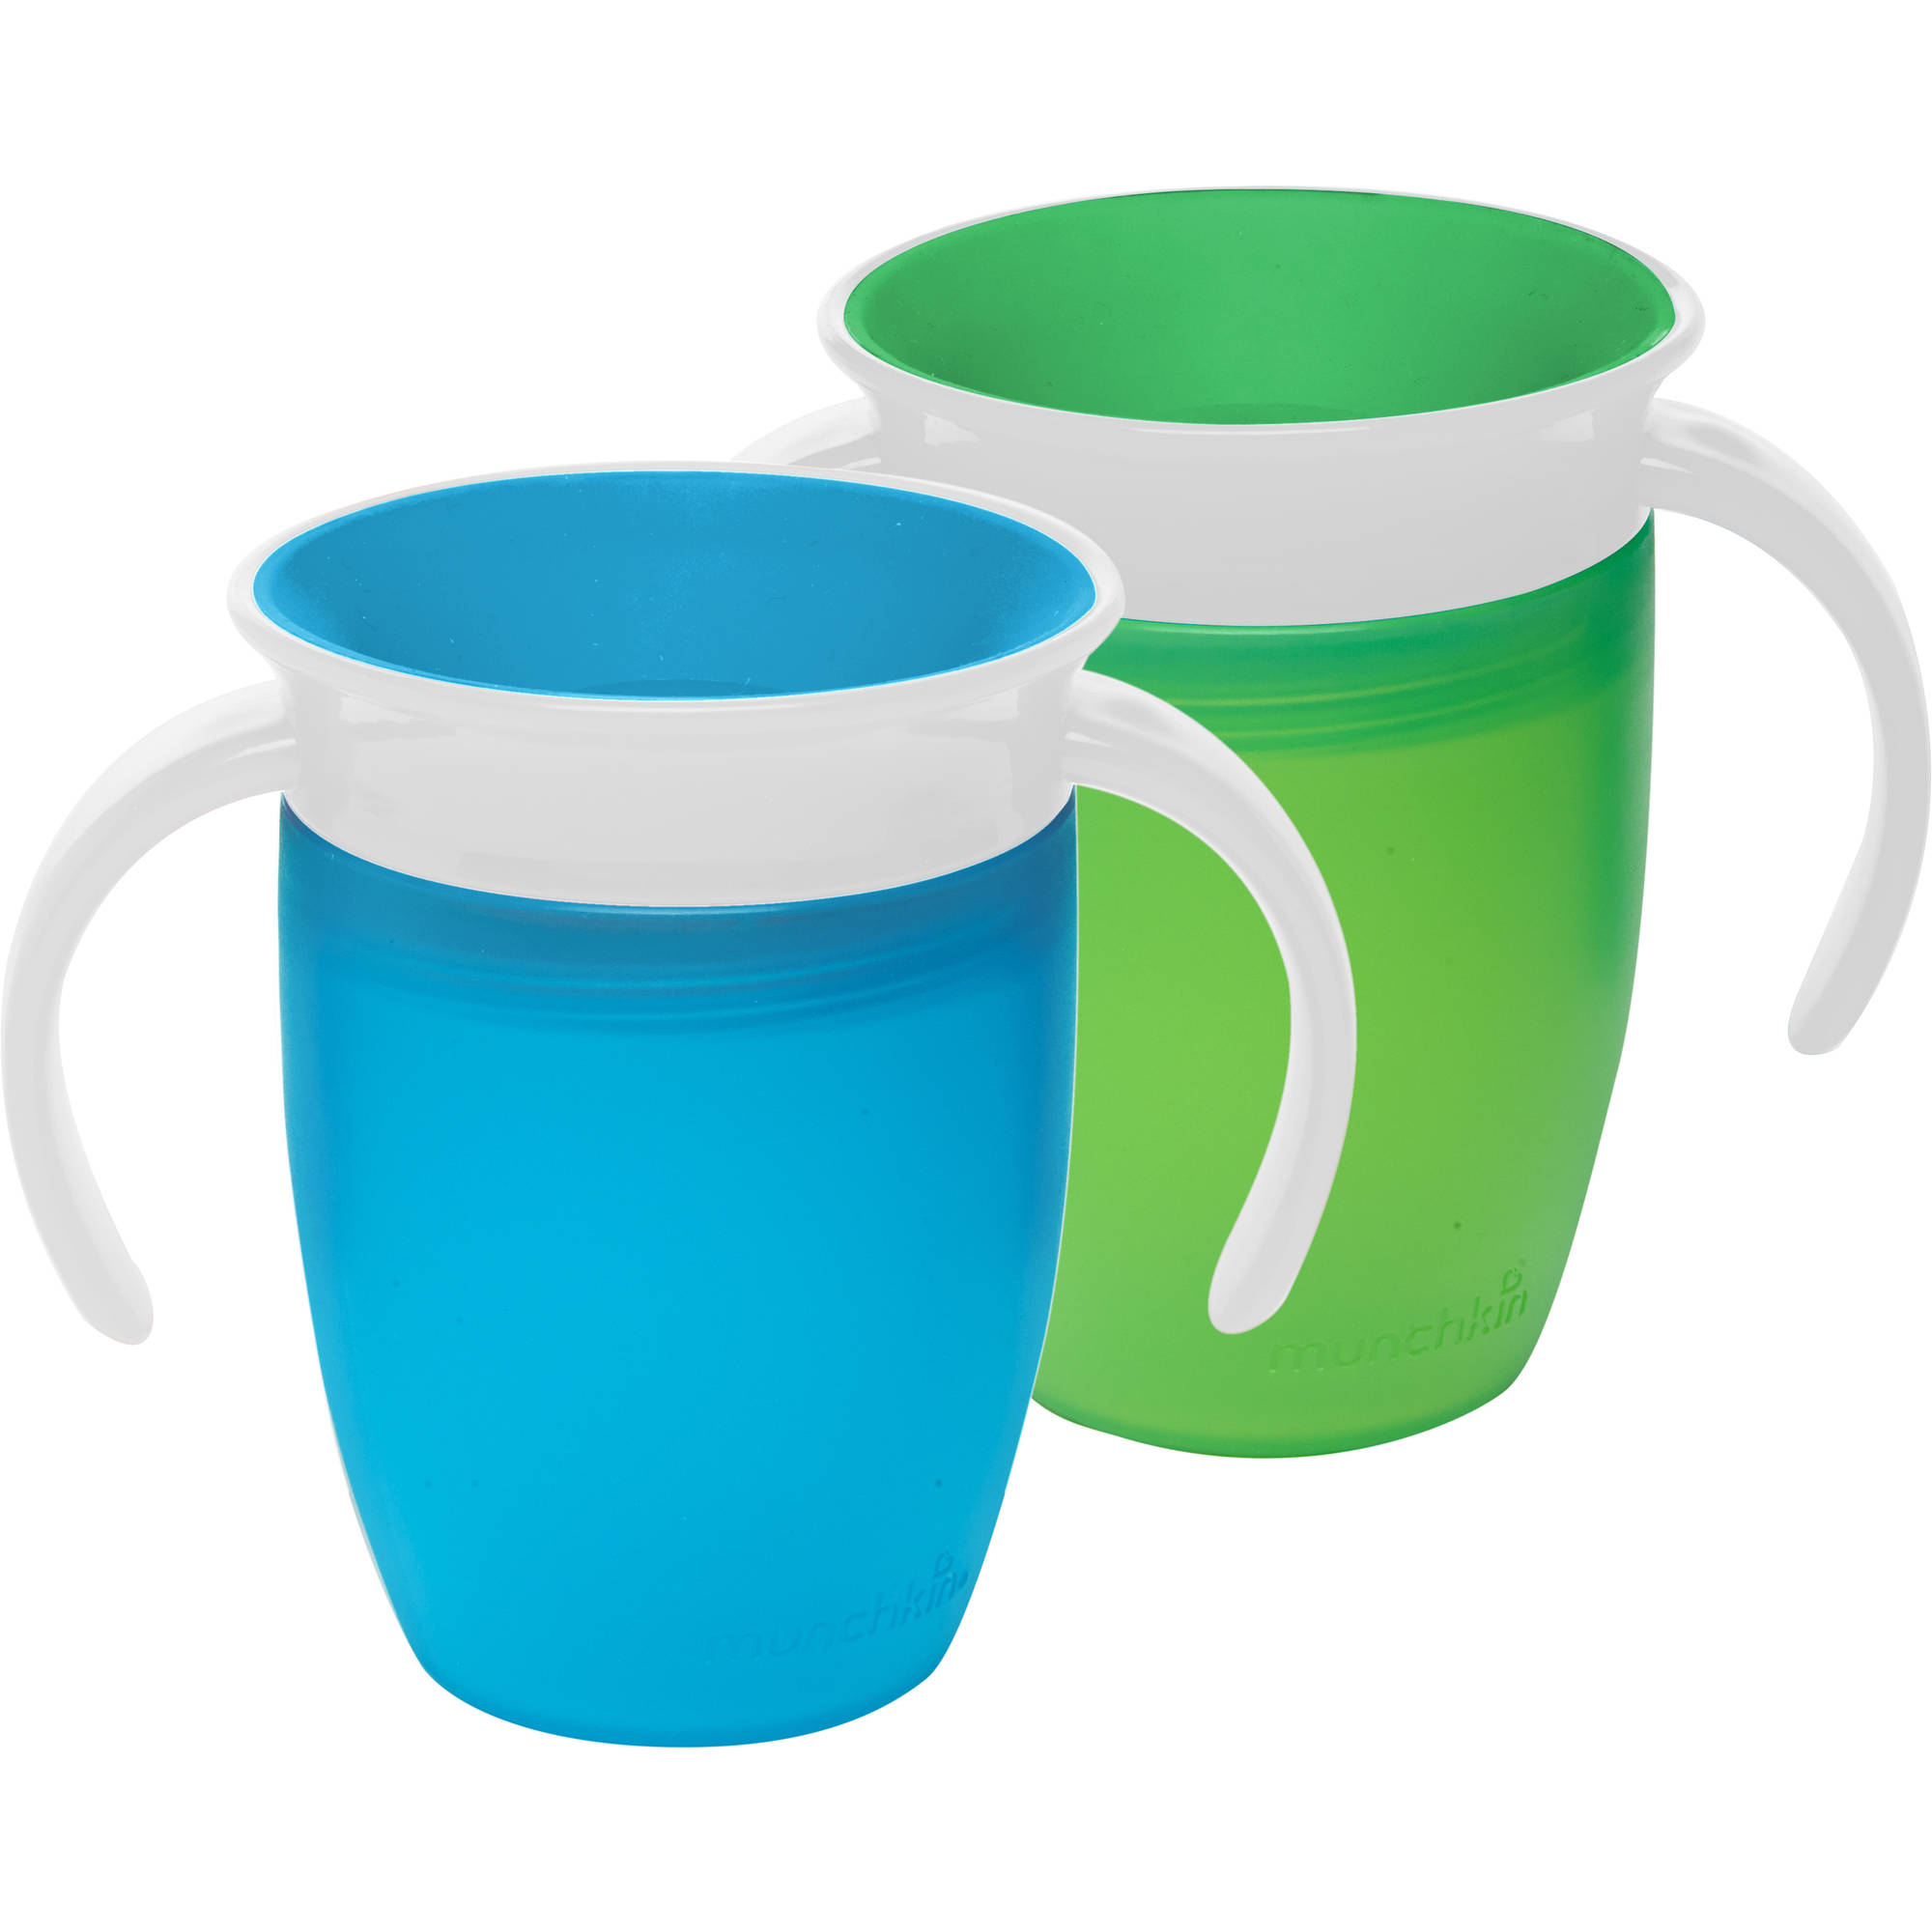 Munchkin Miracle 360 7oz Trainer Cup, BPA-Free, 2-Pack, Green/Blue